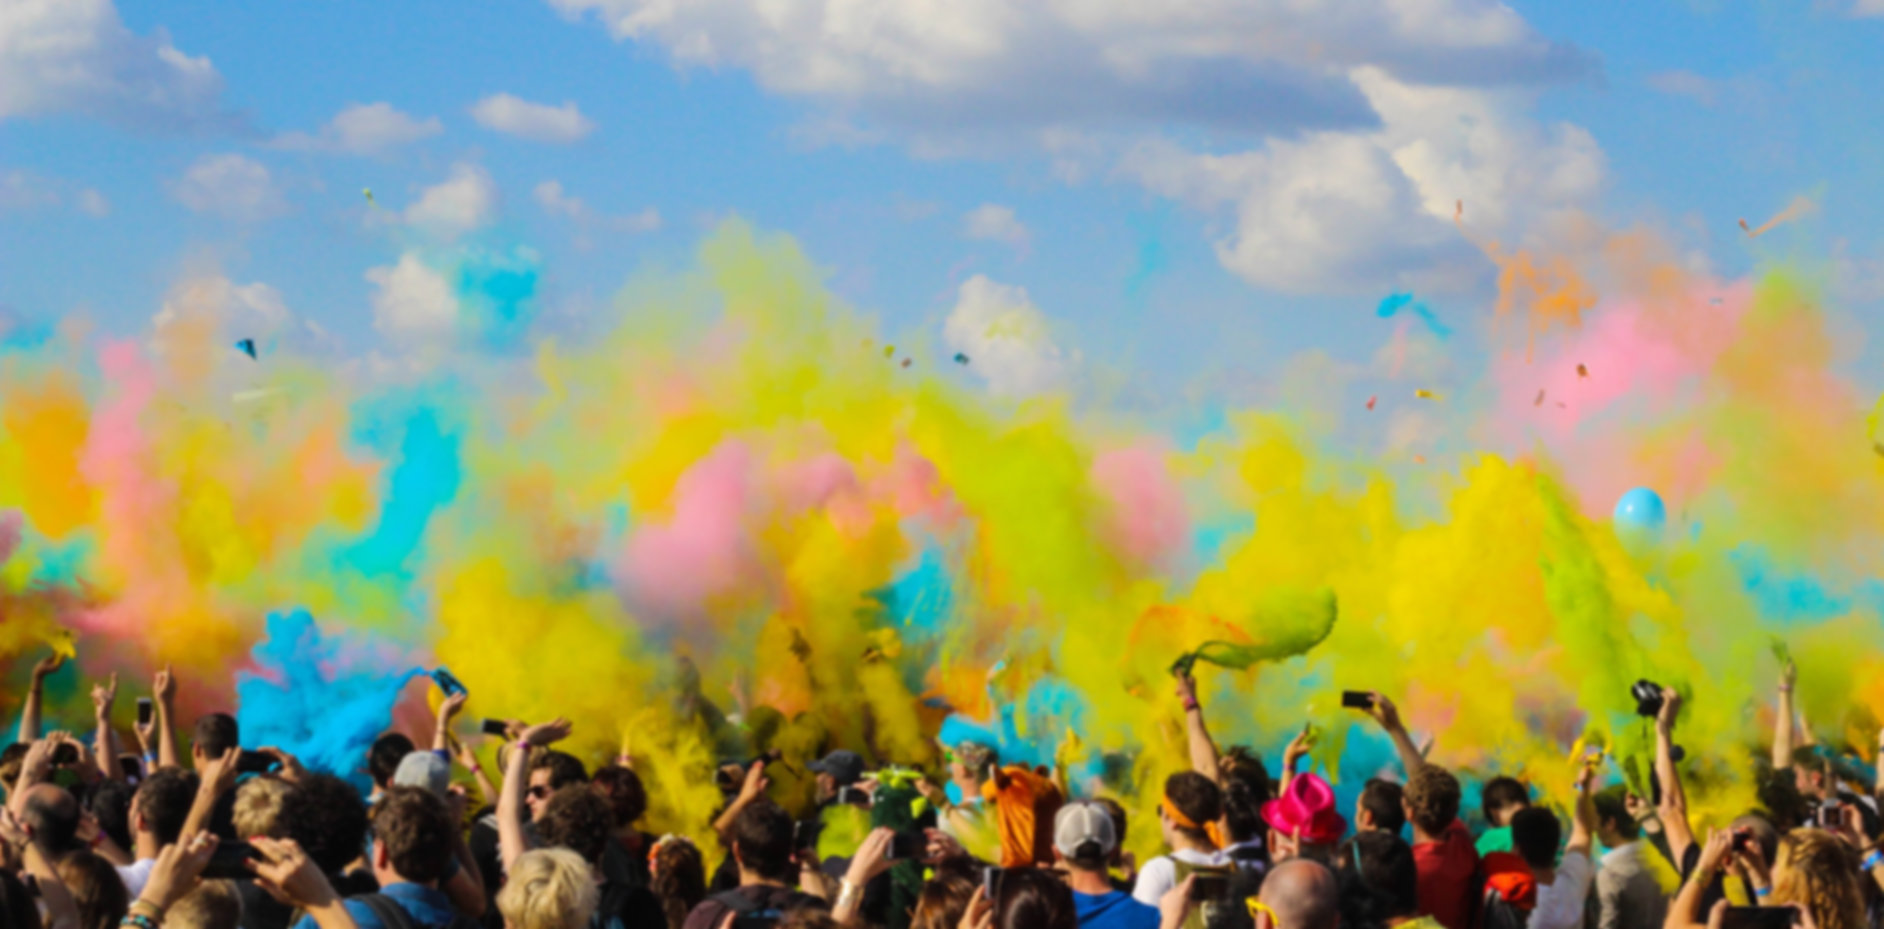 A Cloud of Color